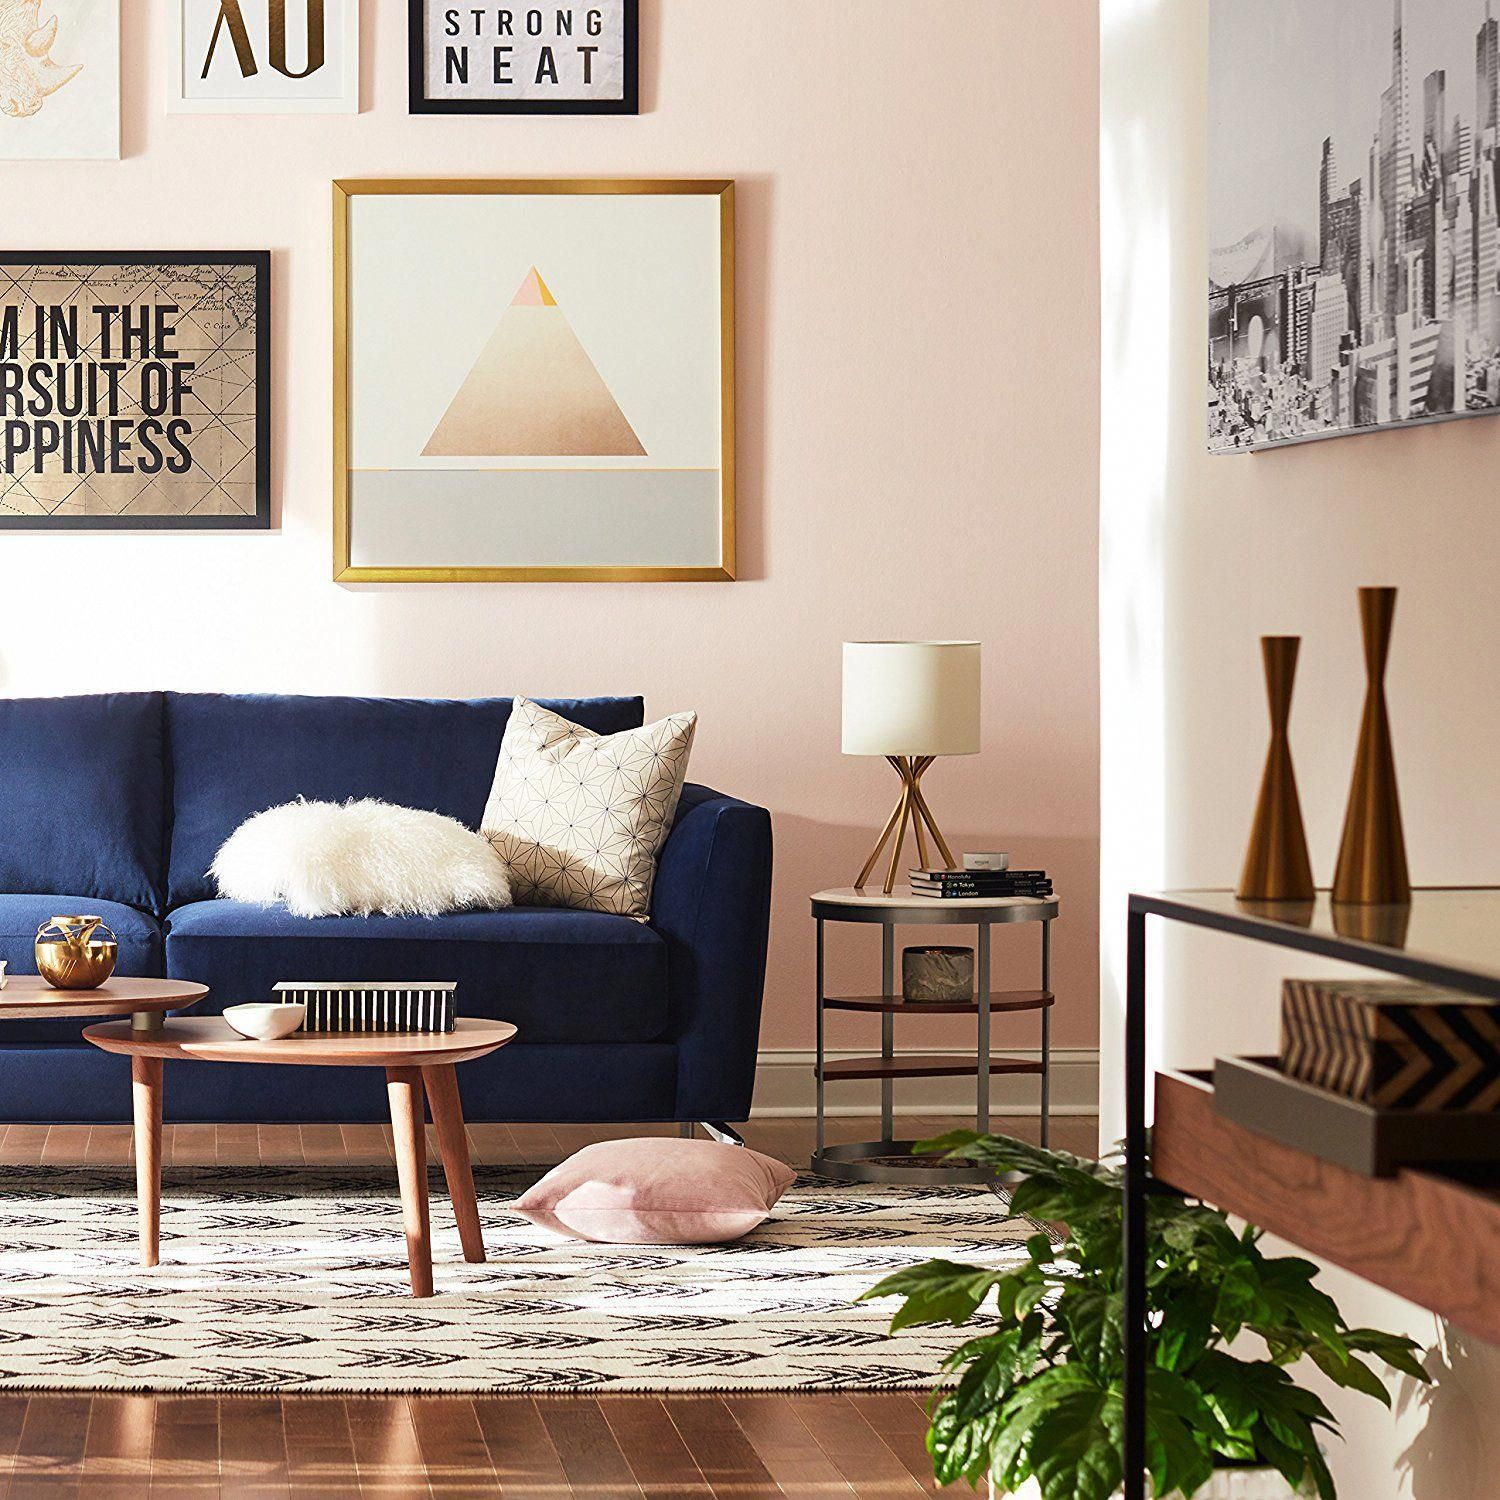 10 Of Our Favorite Lamps To Shop On Prime Day Livingroomcouch In 2020 Blue Sofas Living Room Blue Couch Living Room Blue Couch Living